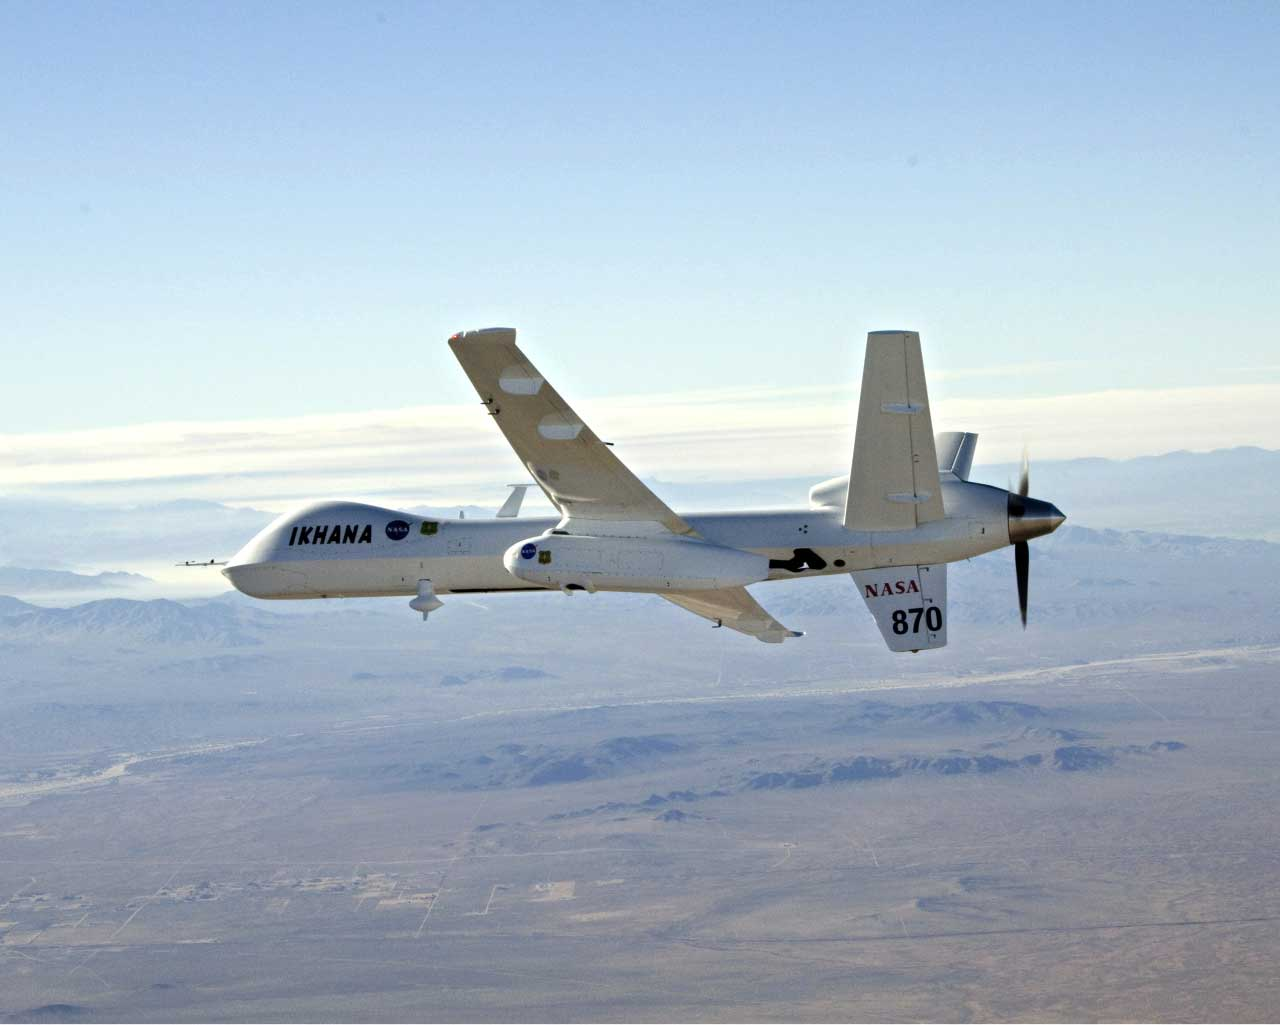 infrared cameras on drones (NASA's Ikhana drone for one) will be monitoring Orion Capsule's re-entry during the unmanned test flight on December 5